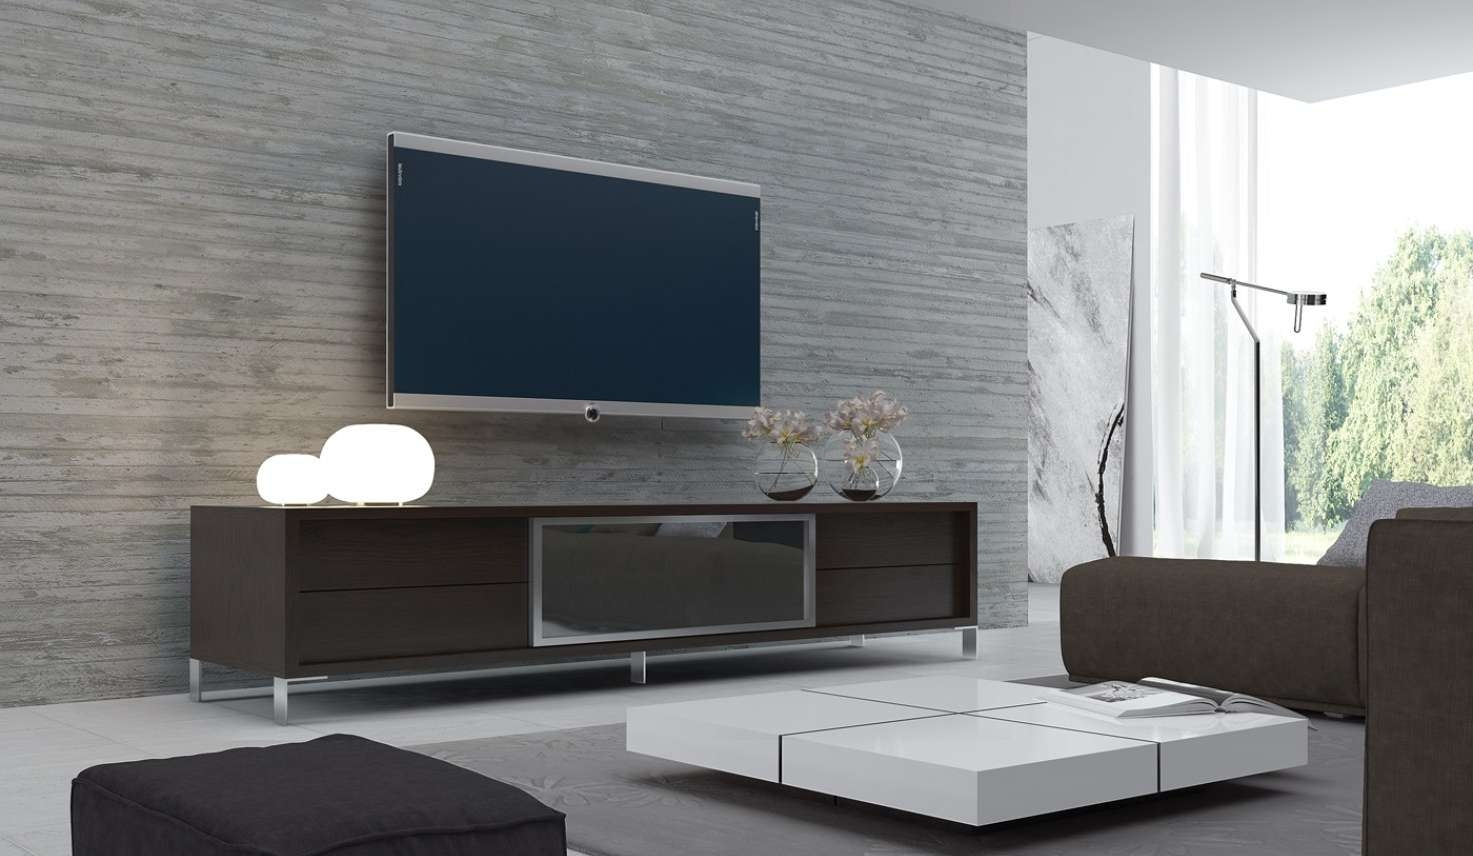 Tv : Exceptional Modern Tv Furniture Cabinets Modern Charm Pertaining To Stylish Tv Cabinets (View 5 of 20)